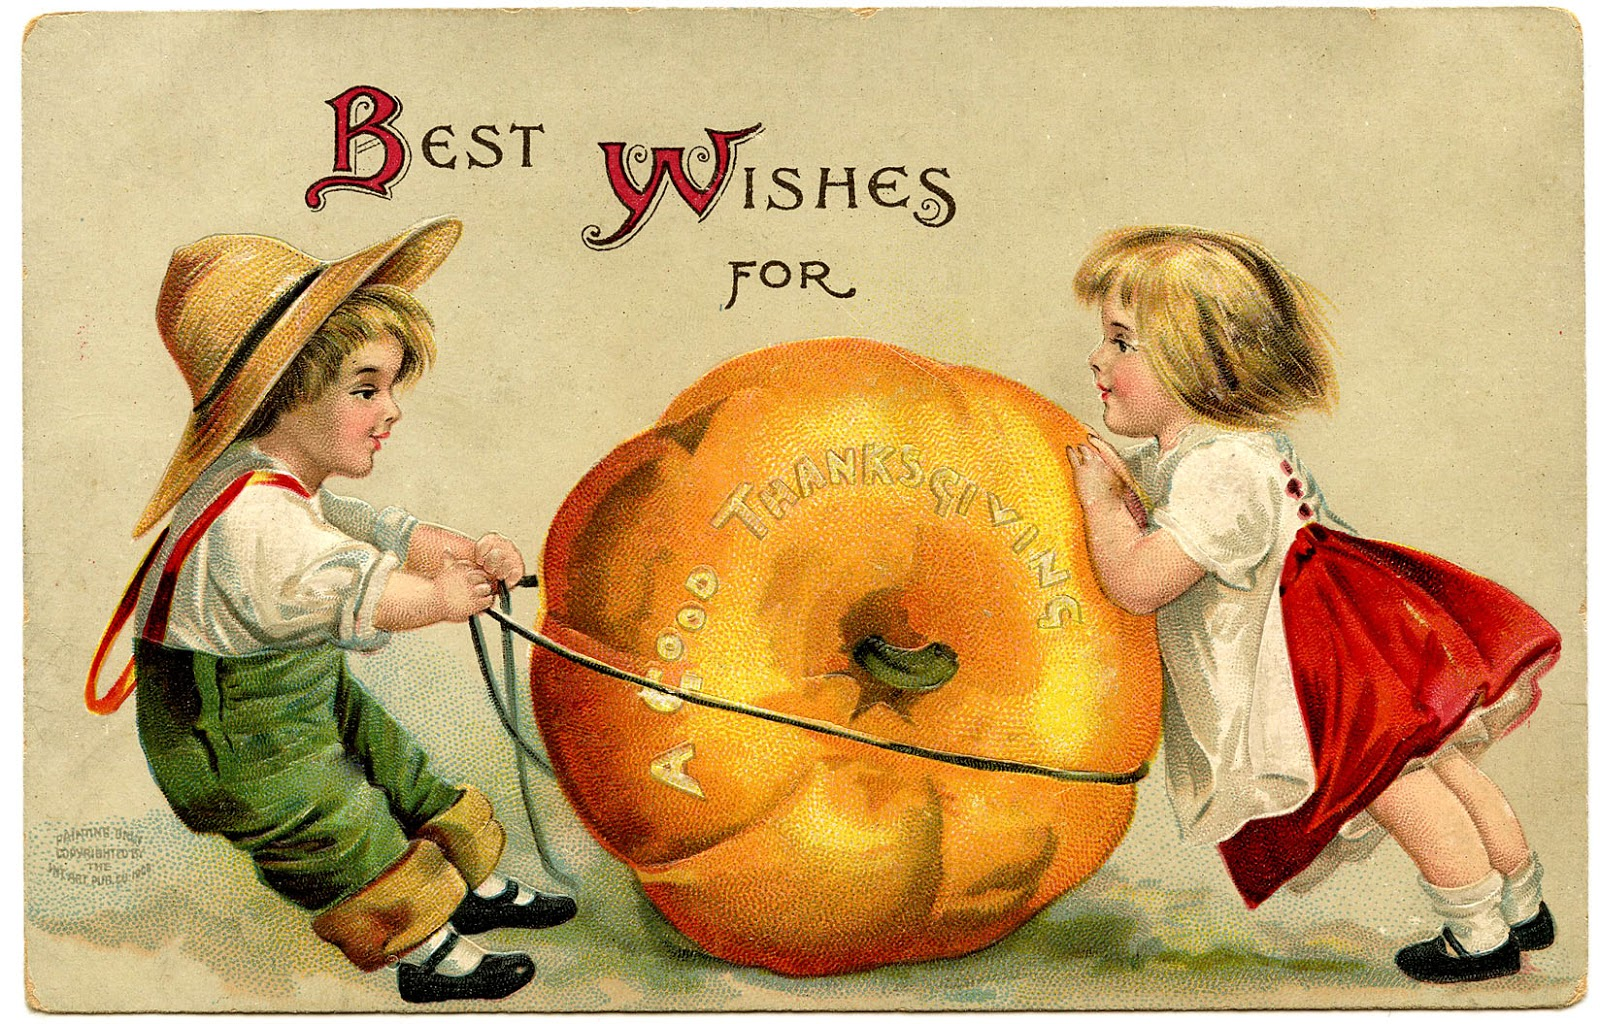 Birthday Greetings Jewish Vintage Thanksgiving Image - Cute Kids With Pumpkin - The